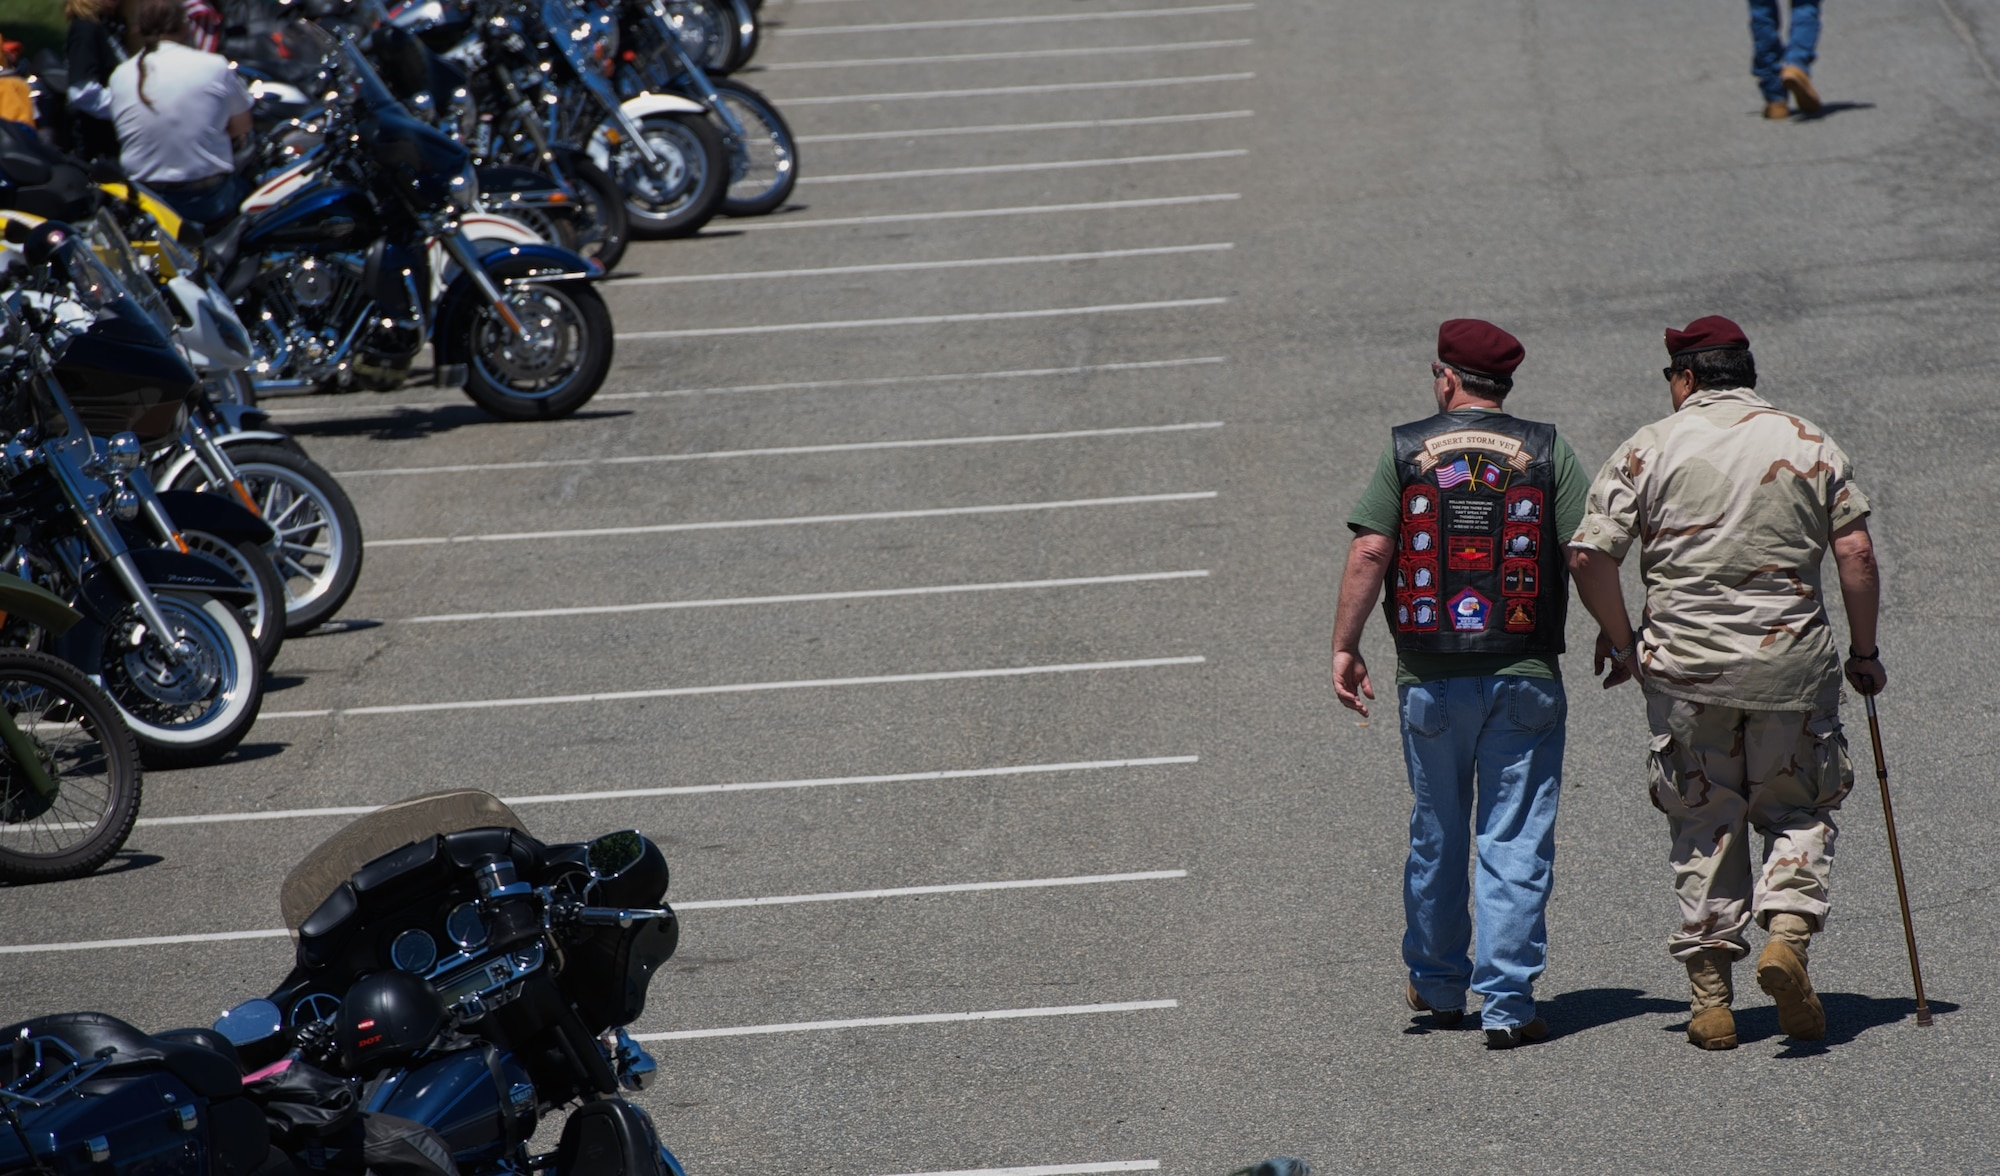 Desert Storm veterans stroll by parked motorcycles, staged for Rolling Thunder May 26, 2013 at the Pentagon in Washington, D.C. The annual Memorial Day motorcycle demonstration run attracts many war veterans and service members, who commemorate their lost and missing comrades on the occasion of memorial day. (U.S. Air Force photo/Senior Airman Alexander W. Riedel)